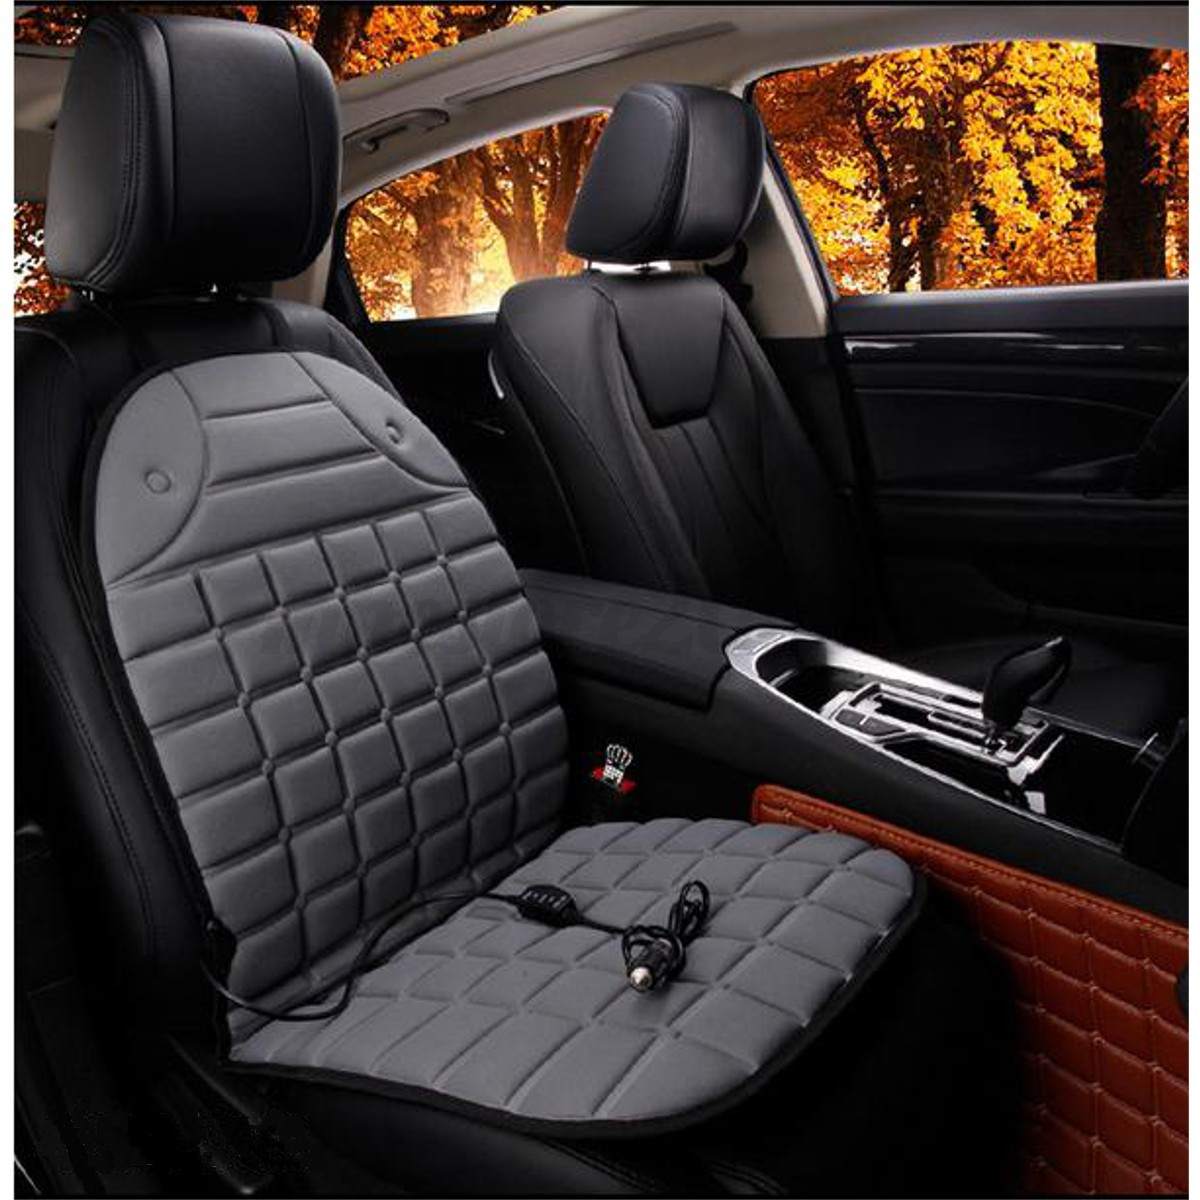 Universal 12V Car Electric Heated Heating Front Seat Cushion Cover Warmer Pad